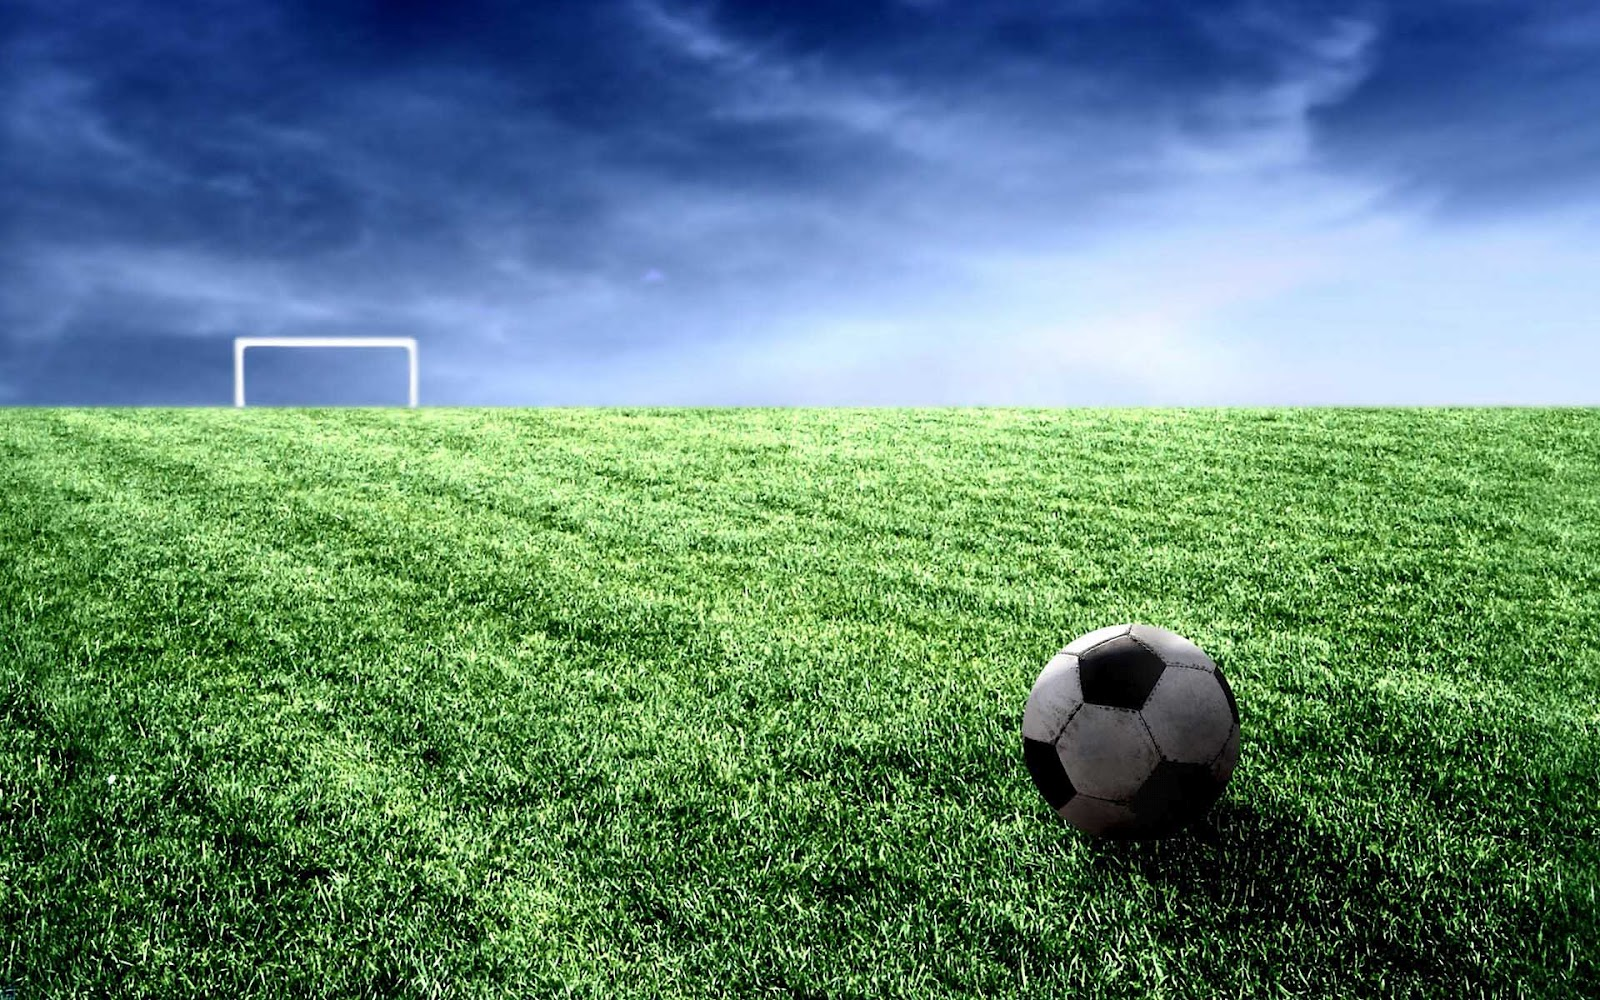 desktop wallpapers sports soccer backgrounds games4jpg 1600x1000